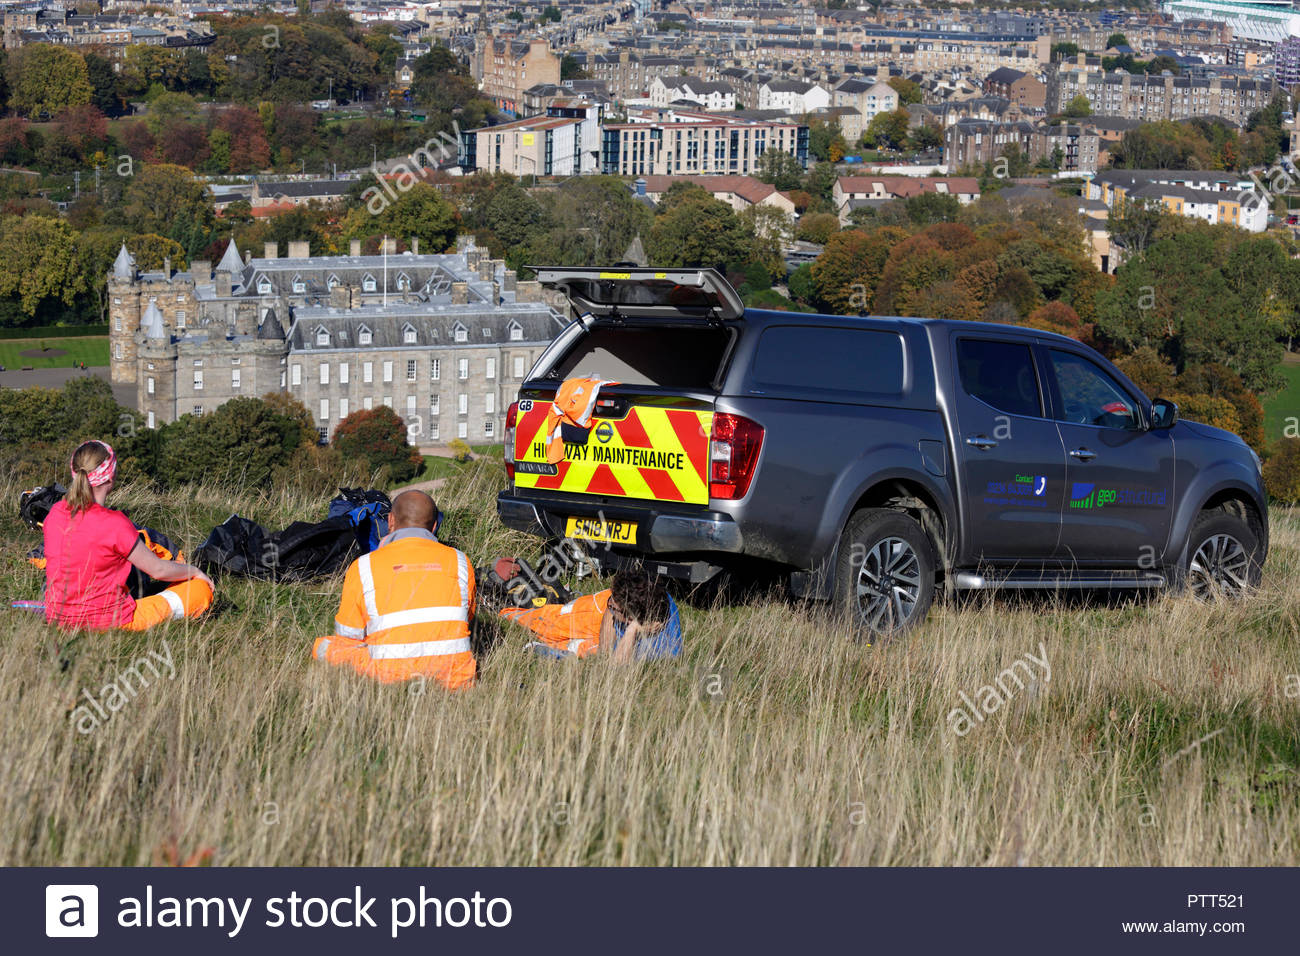 Edinburgh, United Kingdom. 10th October, 2018. Geo-Structural Geotechnical and Structural solutions car parked above Salisbury Crags on Arthurs seat on a clear sunny day. Palace of Holyrood House visible. Credit: Craig Brown/Alamy Live News. - Stock Image